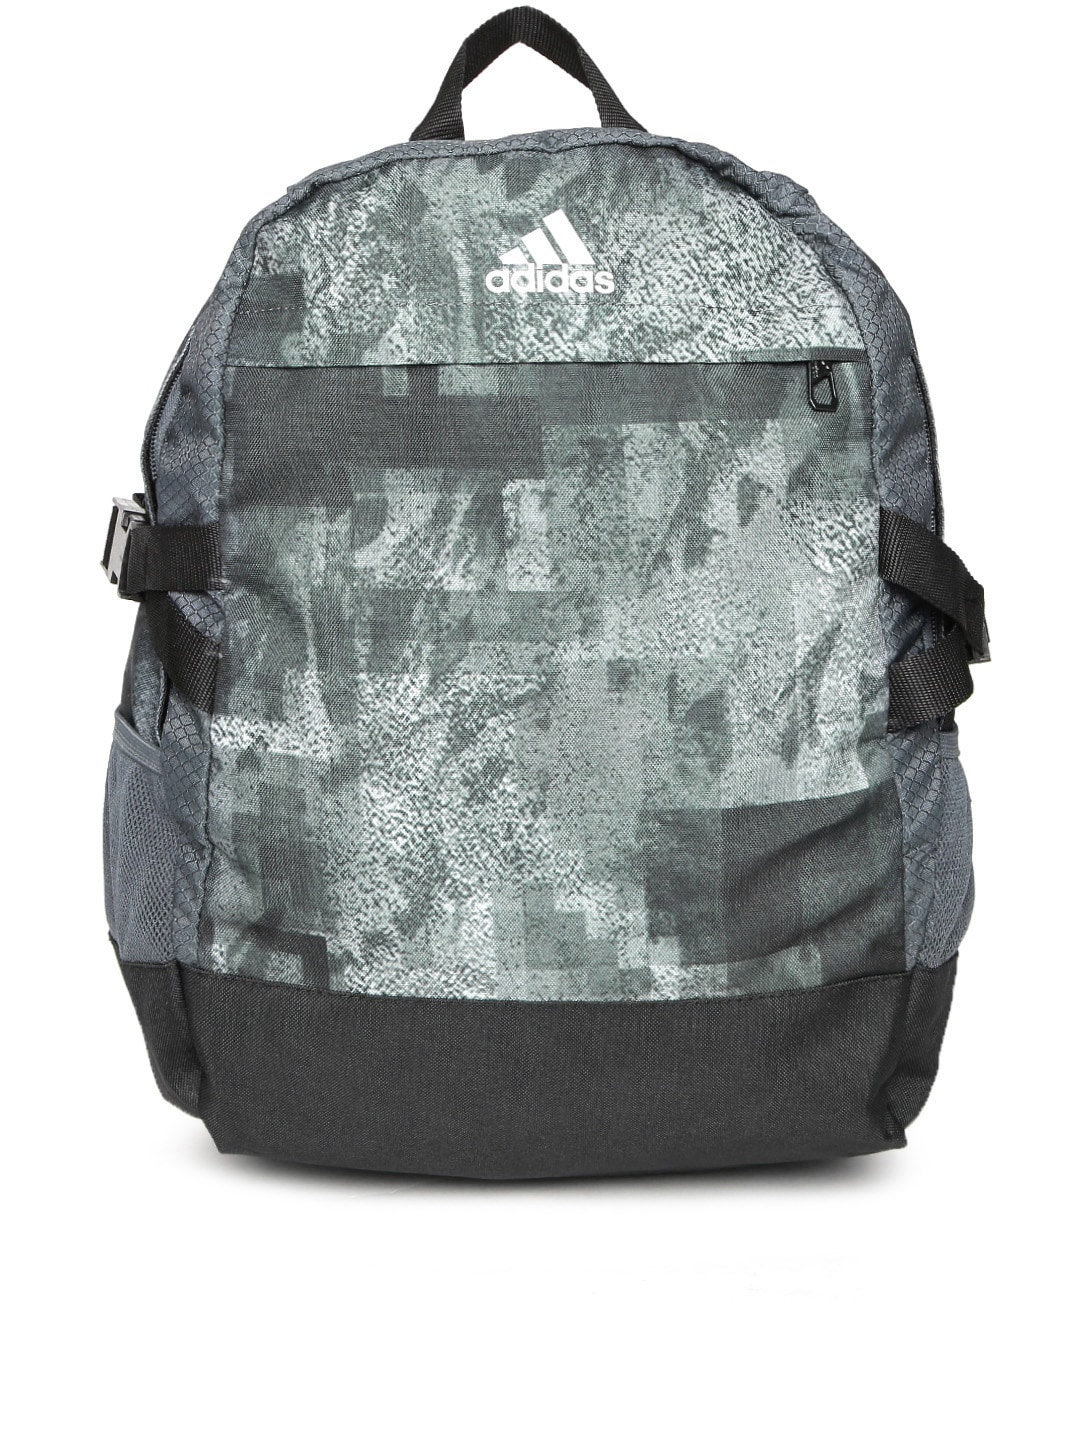 eb6b4c4412ae Adidas ay5095 Unisex Grey Printed Power Iii M Laptop Backpack- Price in  India